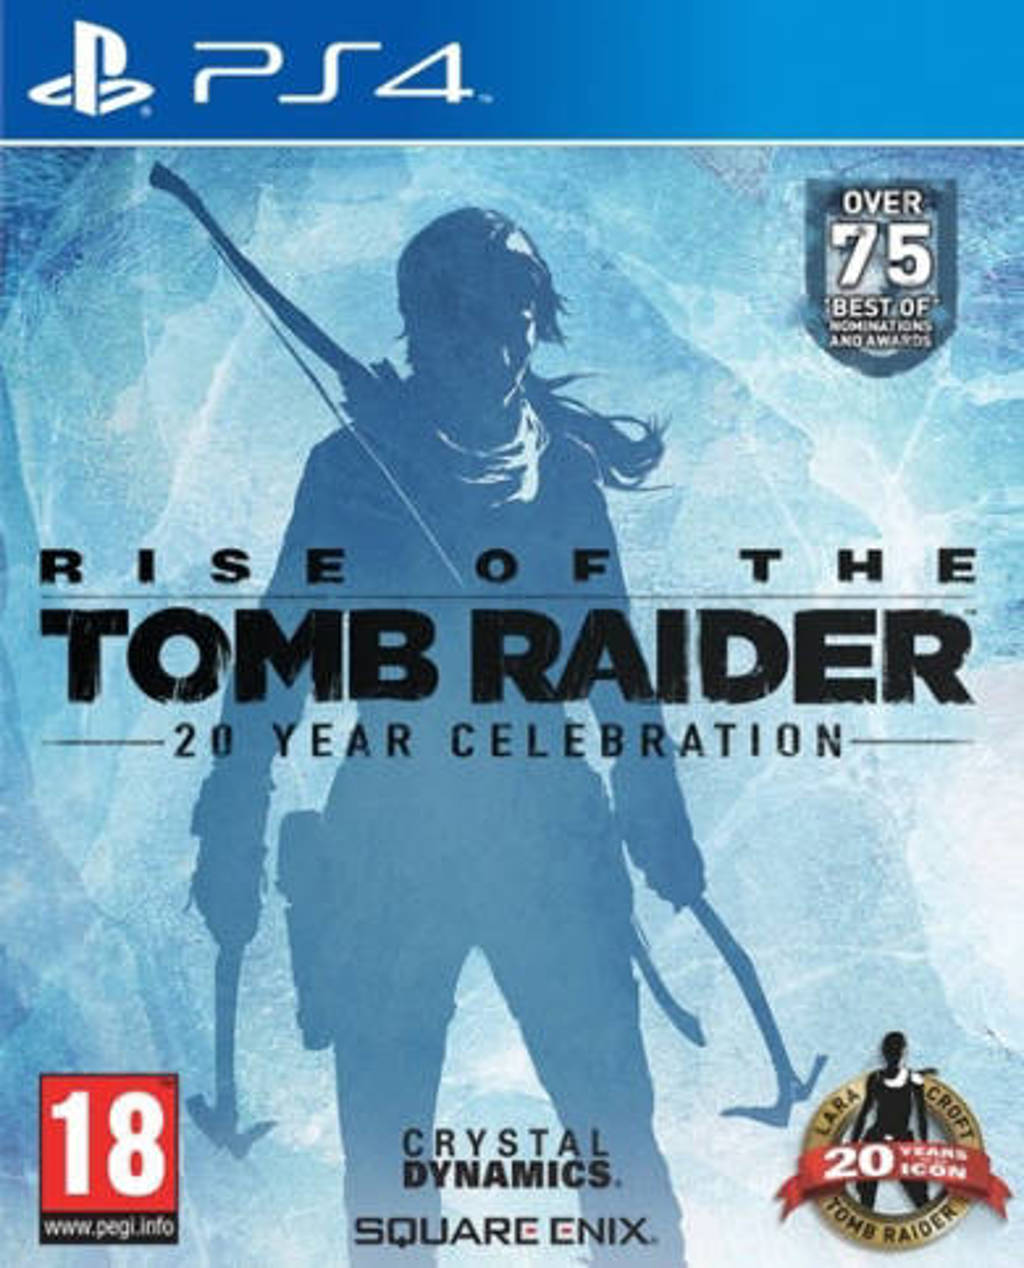 Rise of the tomb raider  (PlayStation 4), N.v.t.